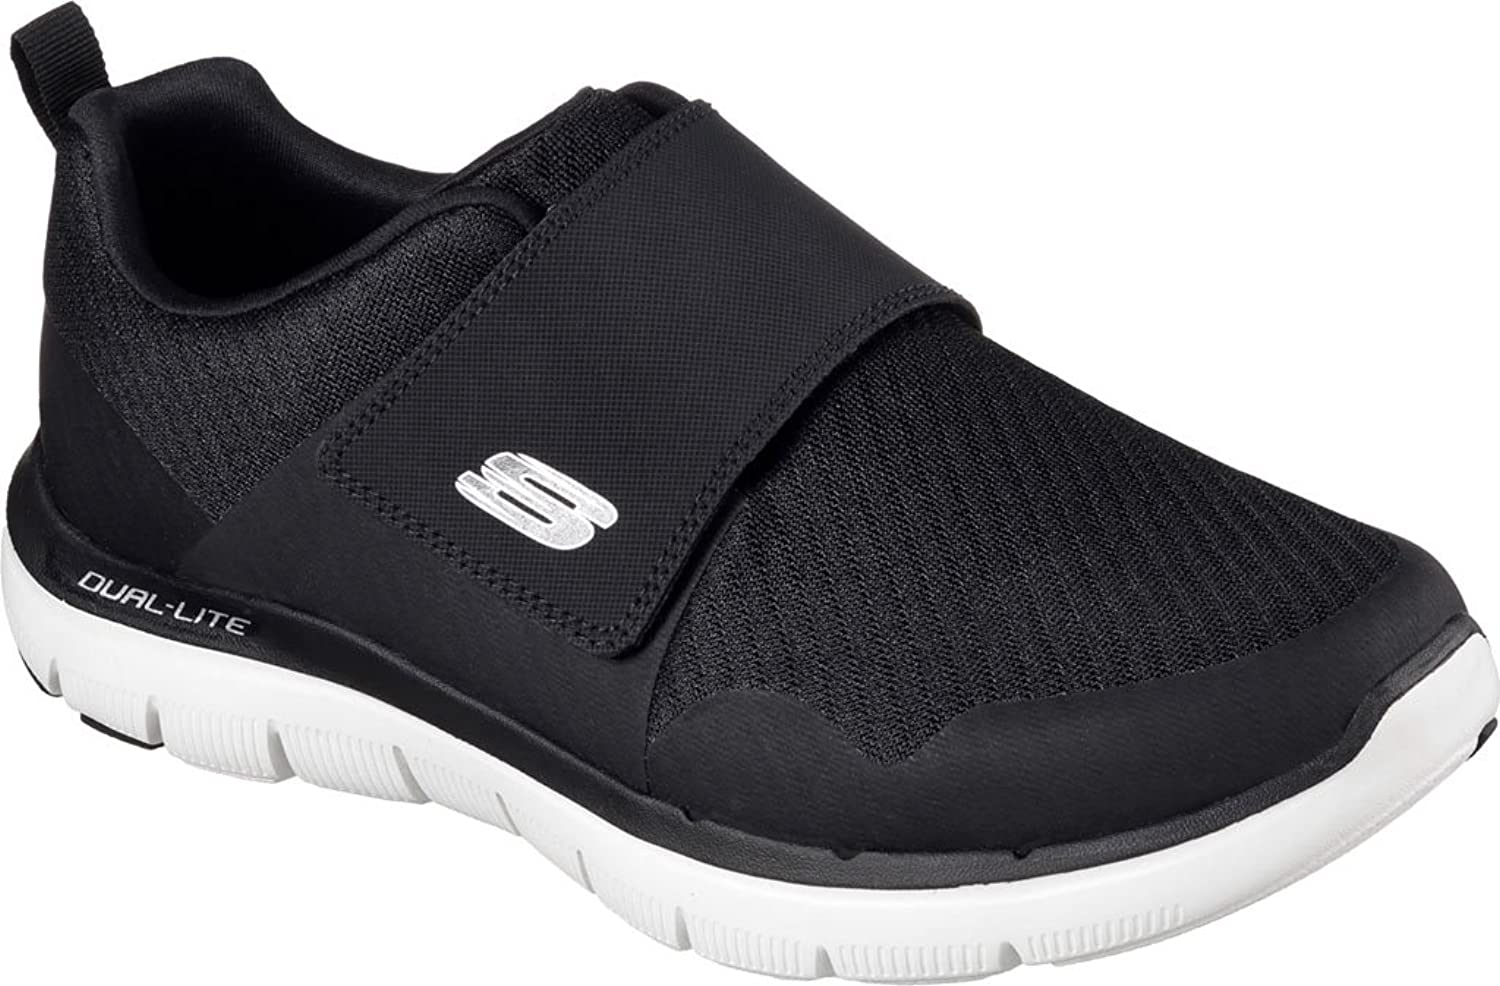 Skechers Men's Flex Advantage 2.0 Gurn Trainer,Black White, 9.5 D(M) US